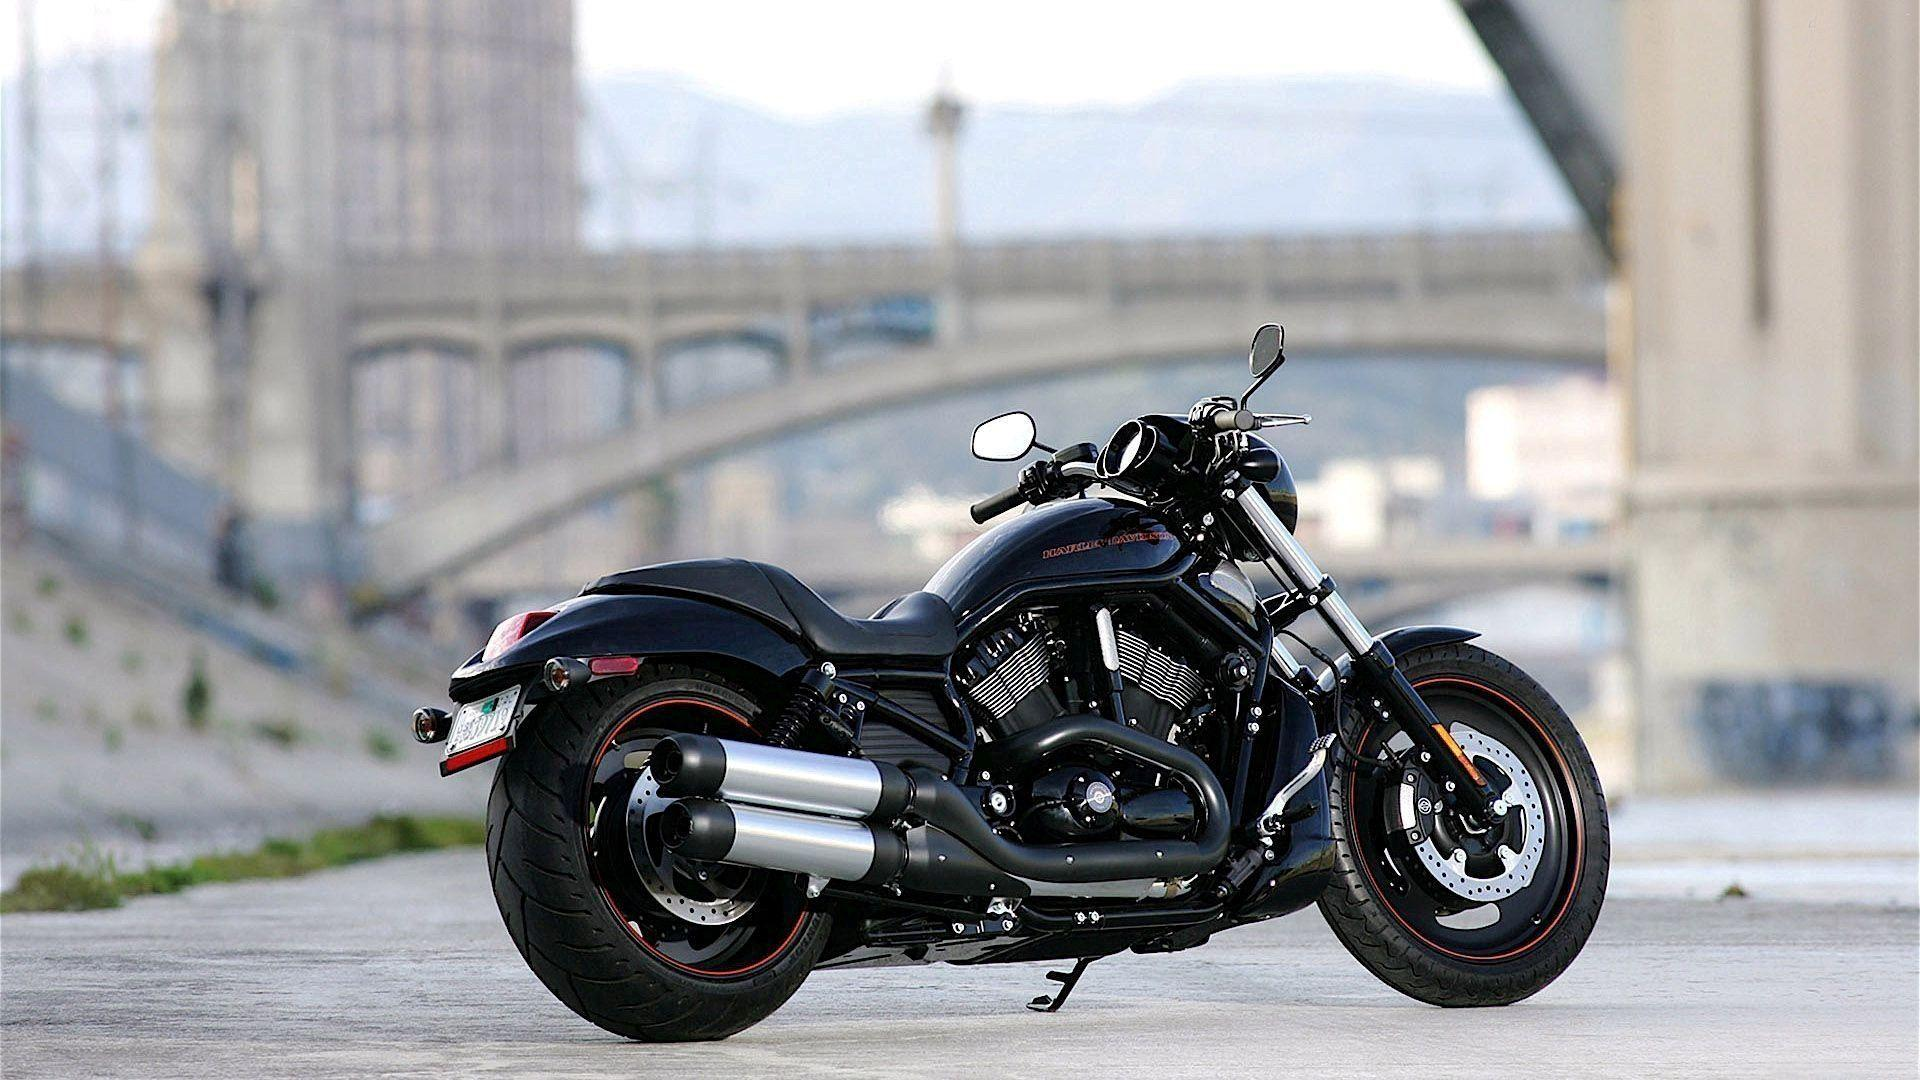 New Harley Davidson on Road HD Photo Backgrounds